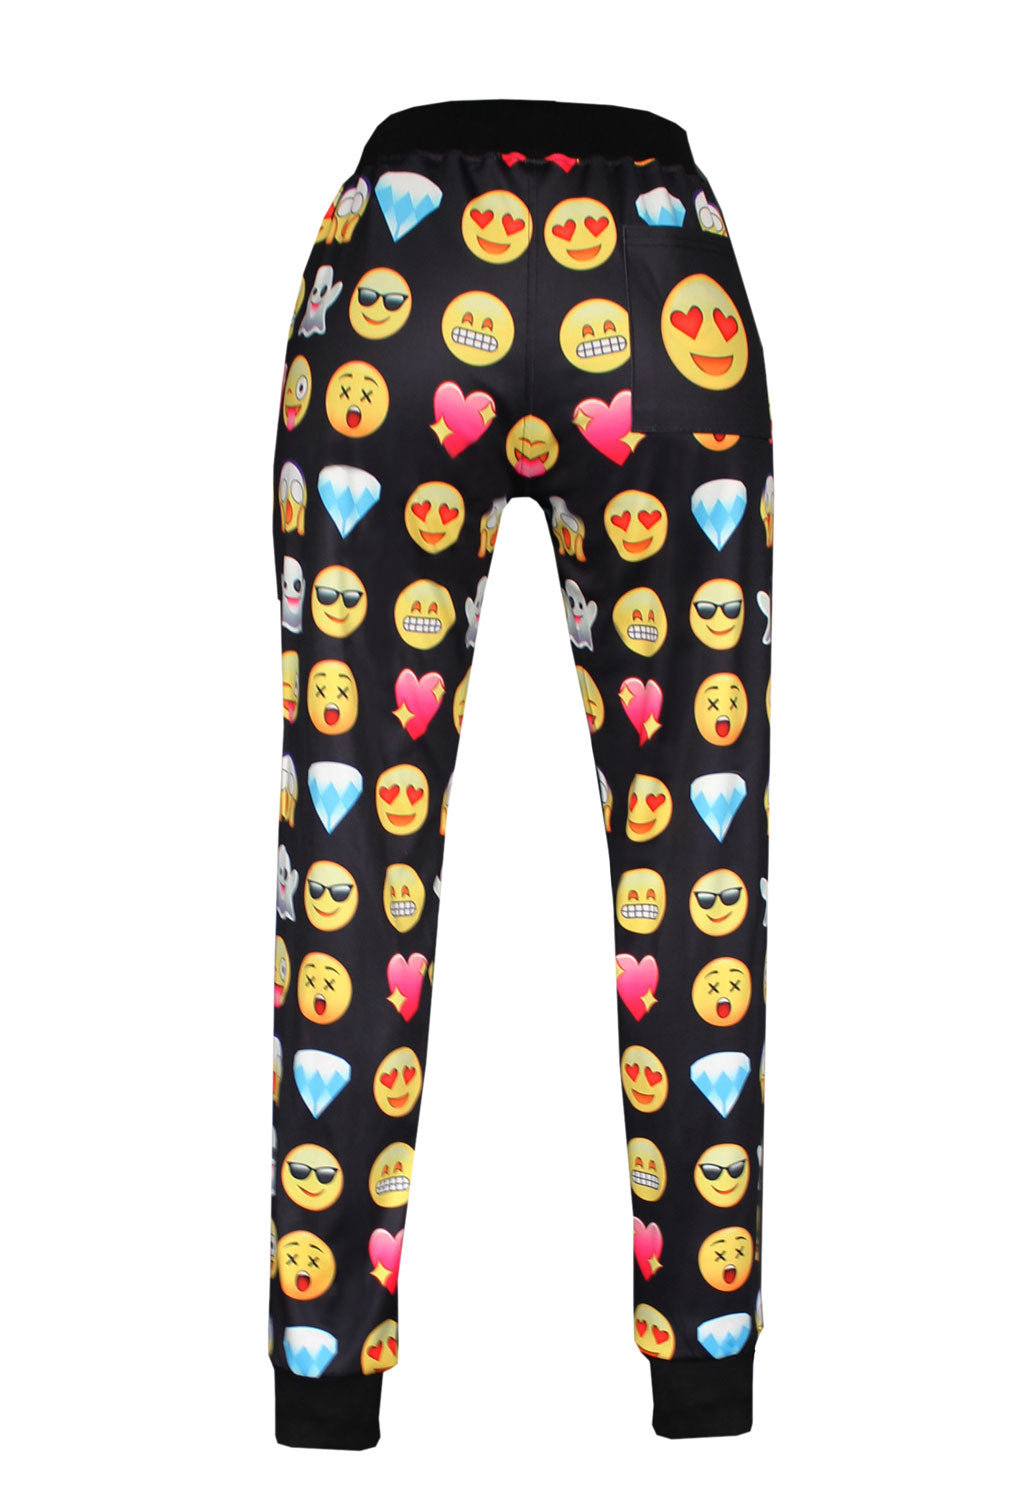 bf0c54c8b3 Sexy women emoji print jogging pants sexy affordable clothing jpg 1033x1500 Emoji  pants